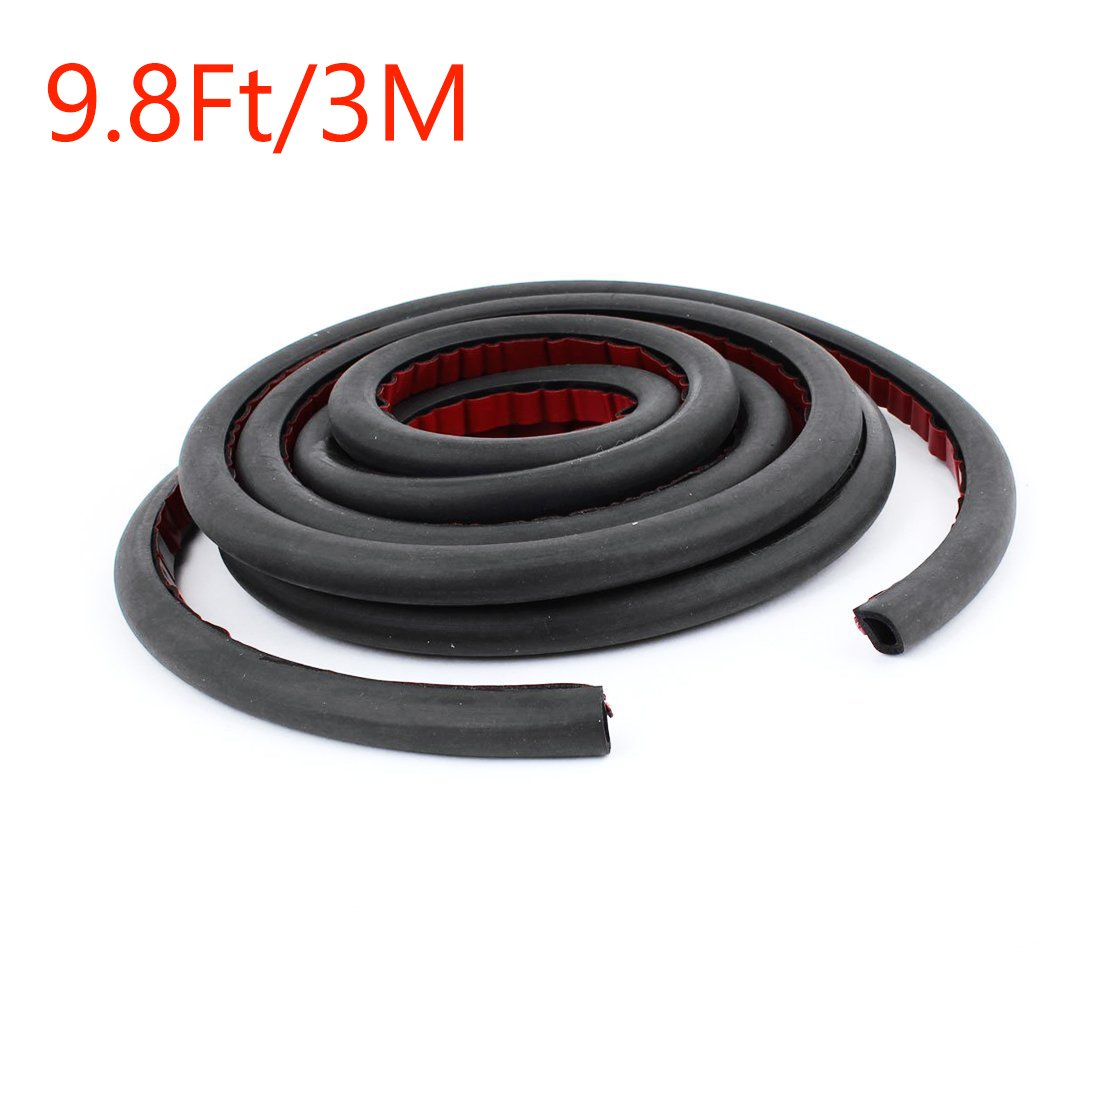 Sydien 9.8Ft/3M D-Shape Car Door Seal Strip Truck Motor Door Rubber Seal Strip Decorate Weatherstrip Hollow Black